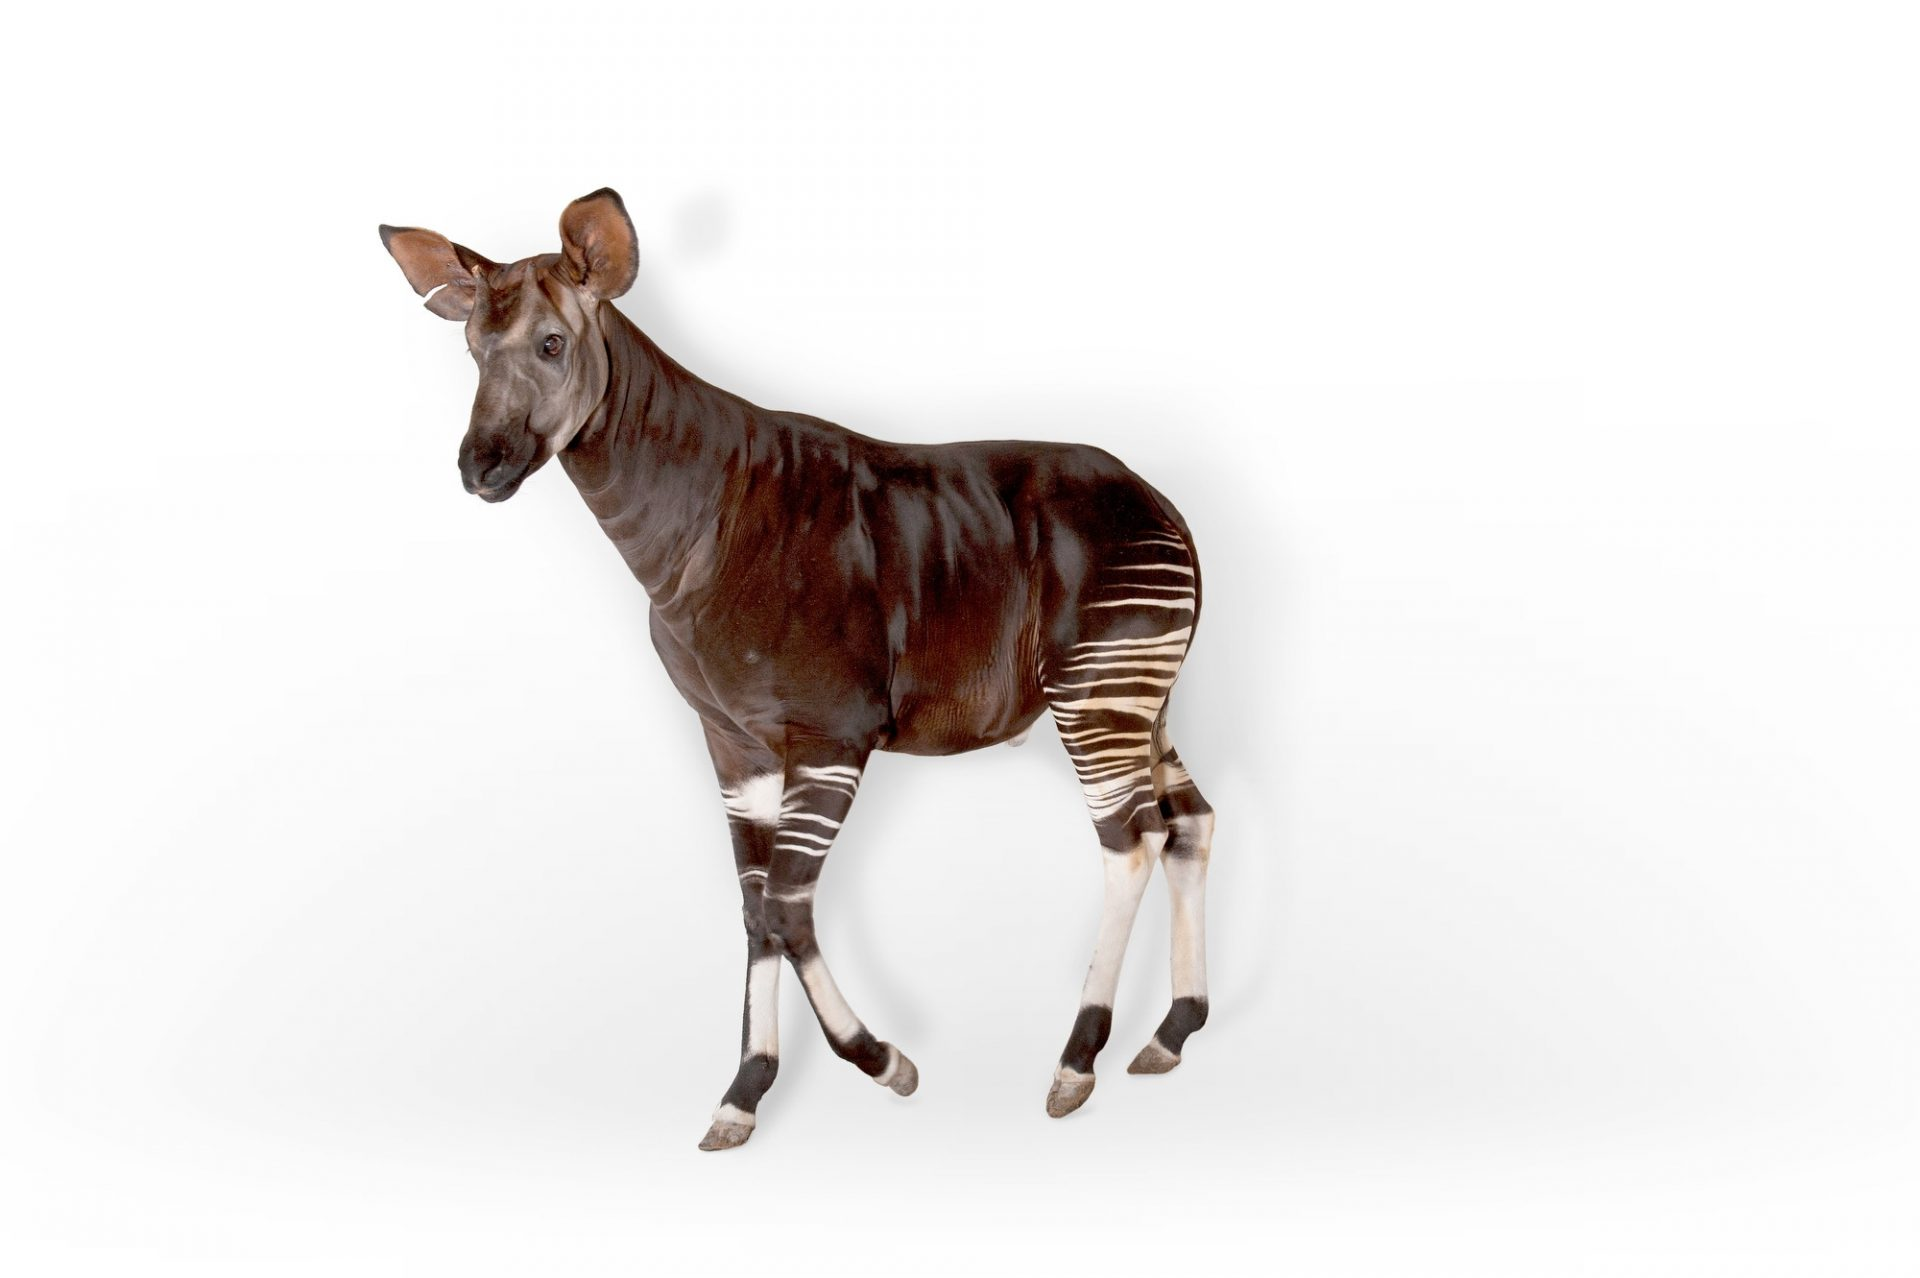 A male okapi (Okapia johnstoni) at the White Oak Conservation Center.